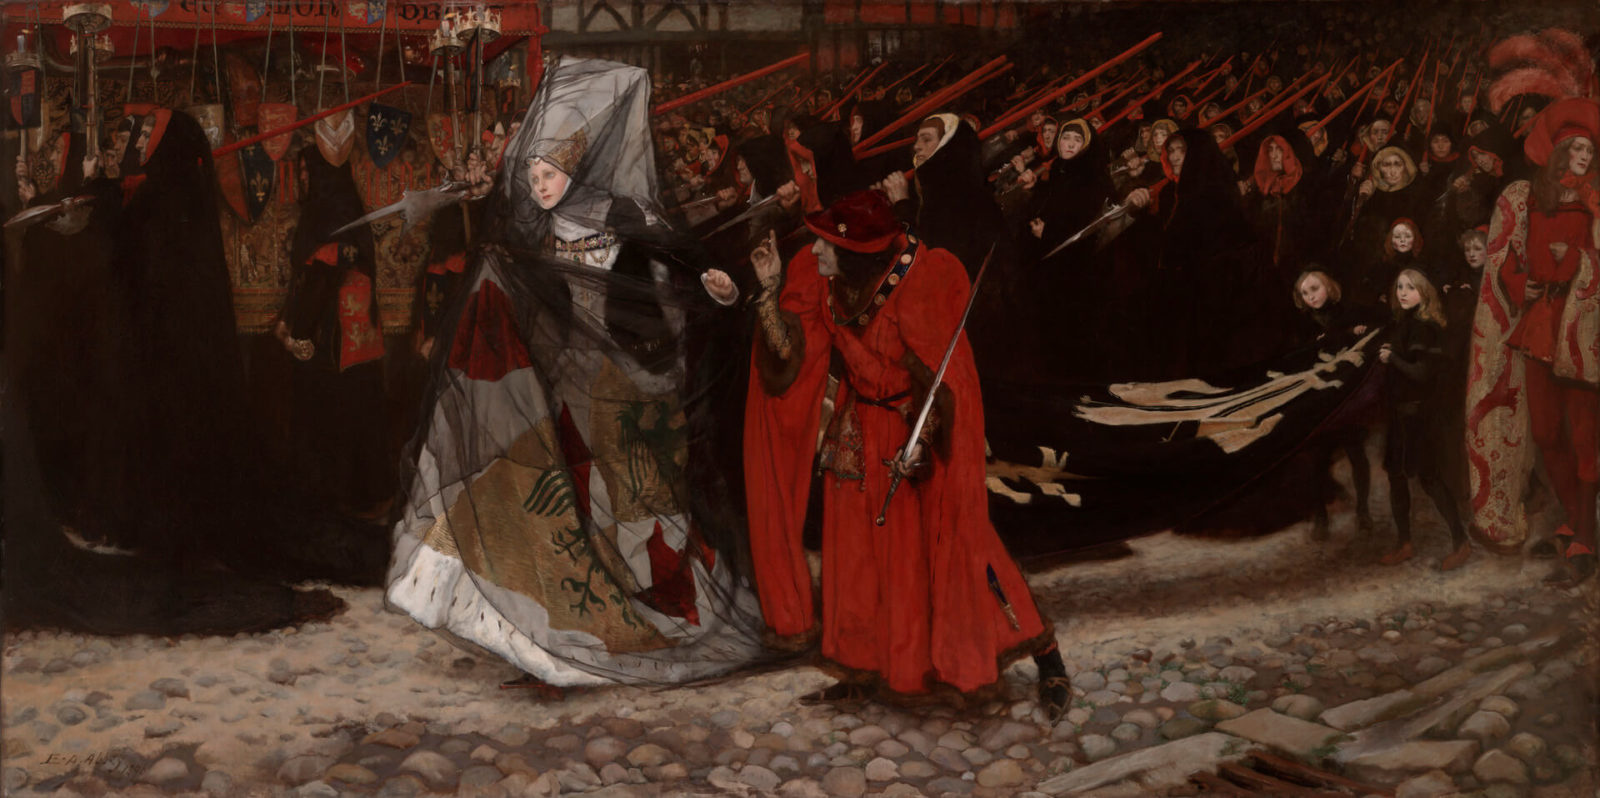 """In scarlet: the prototypes of the """"Game of Thrones"""" in history and painting"""